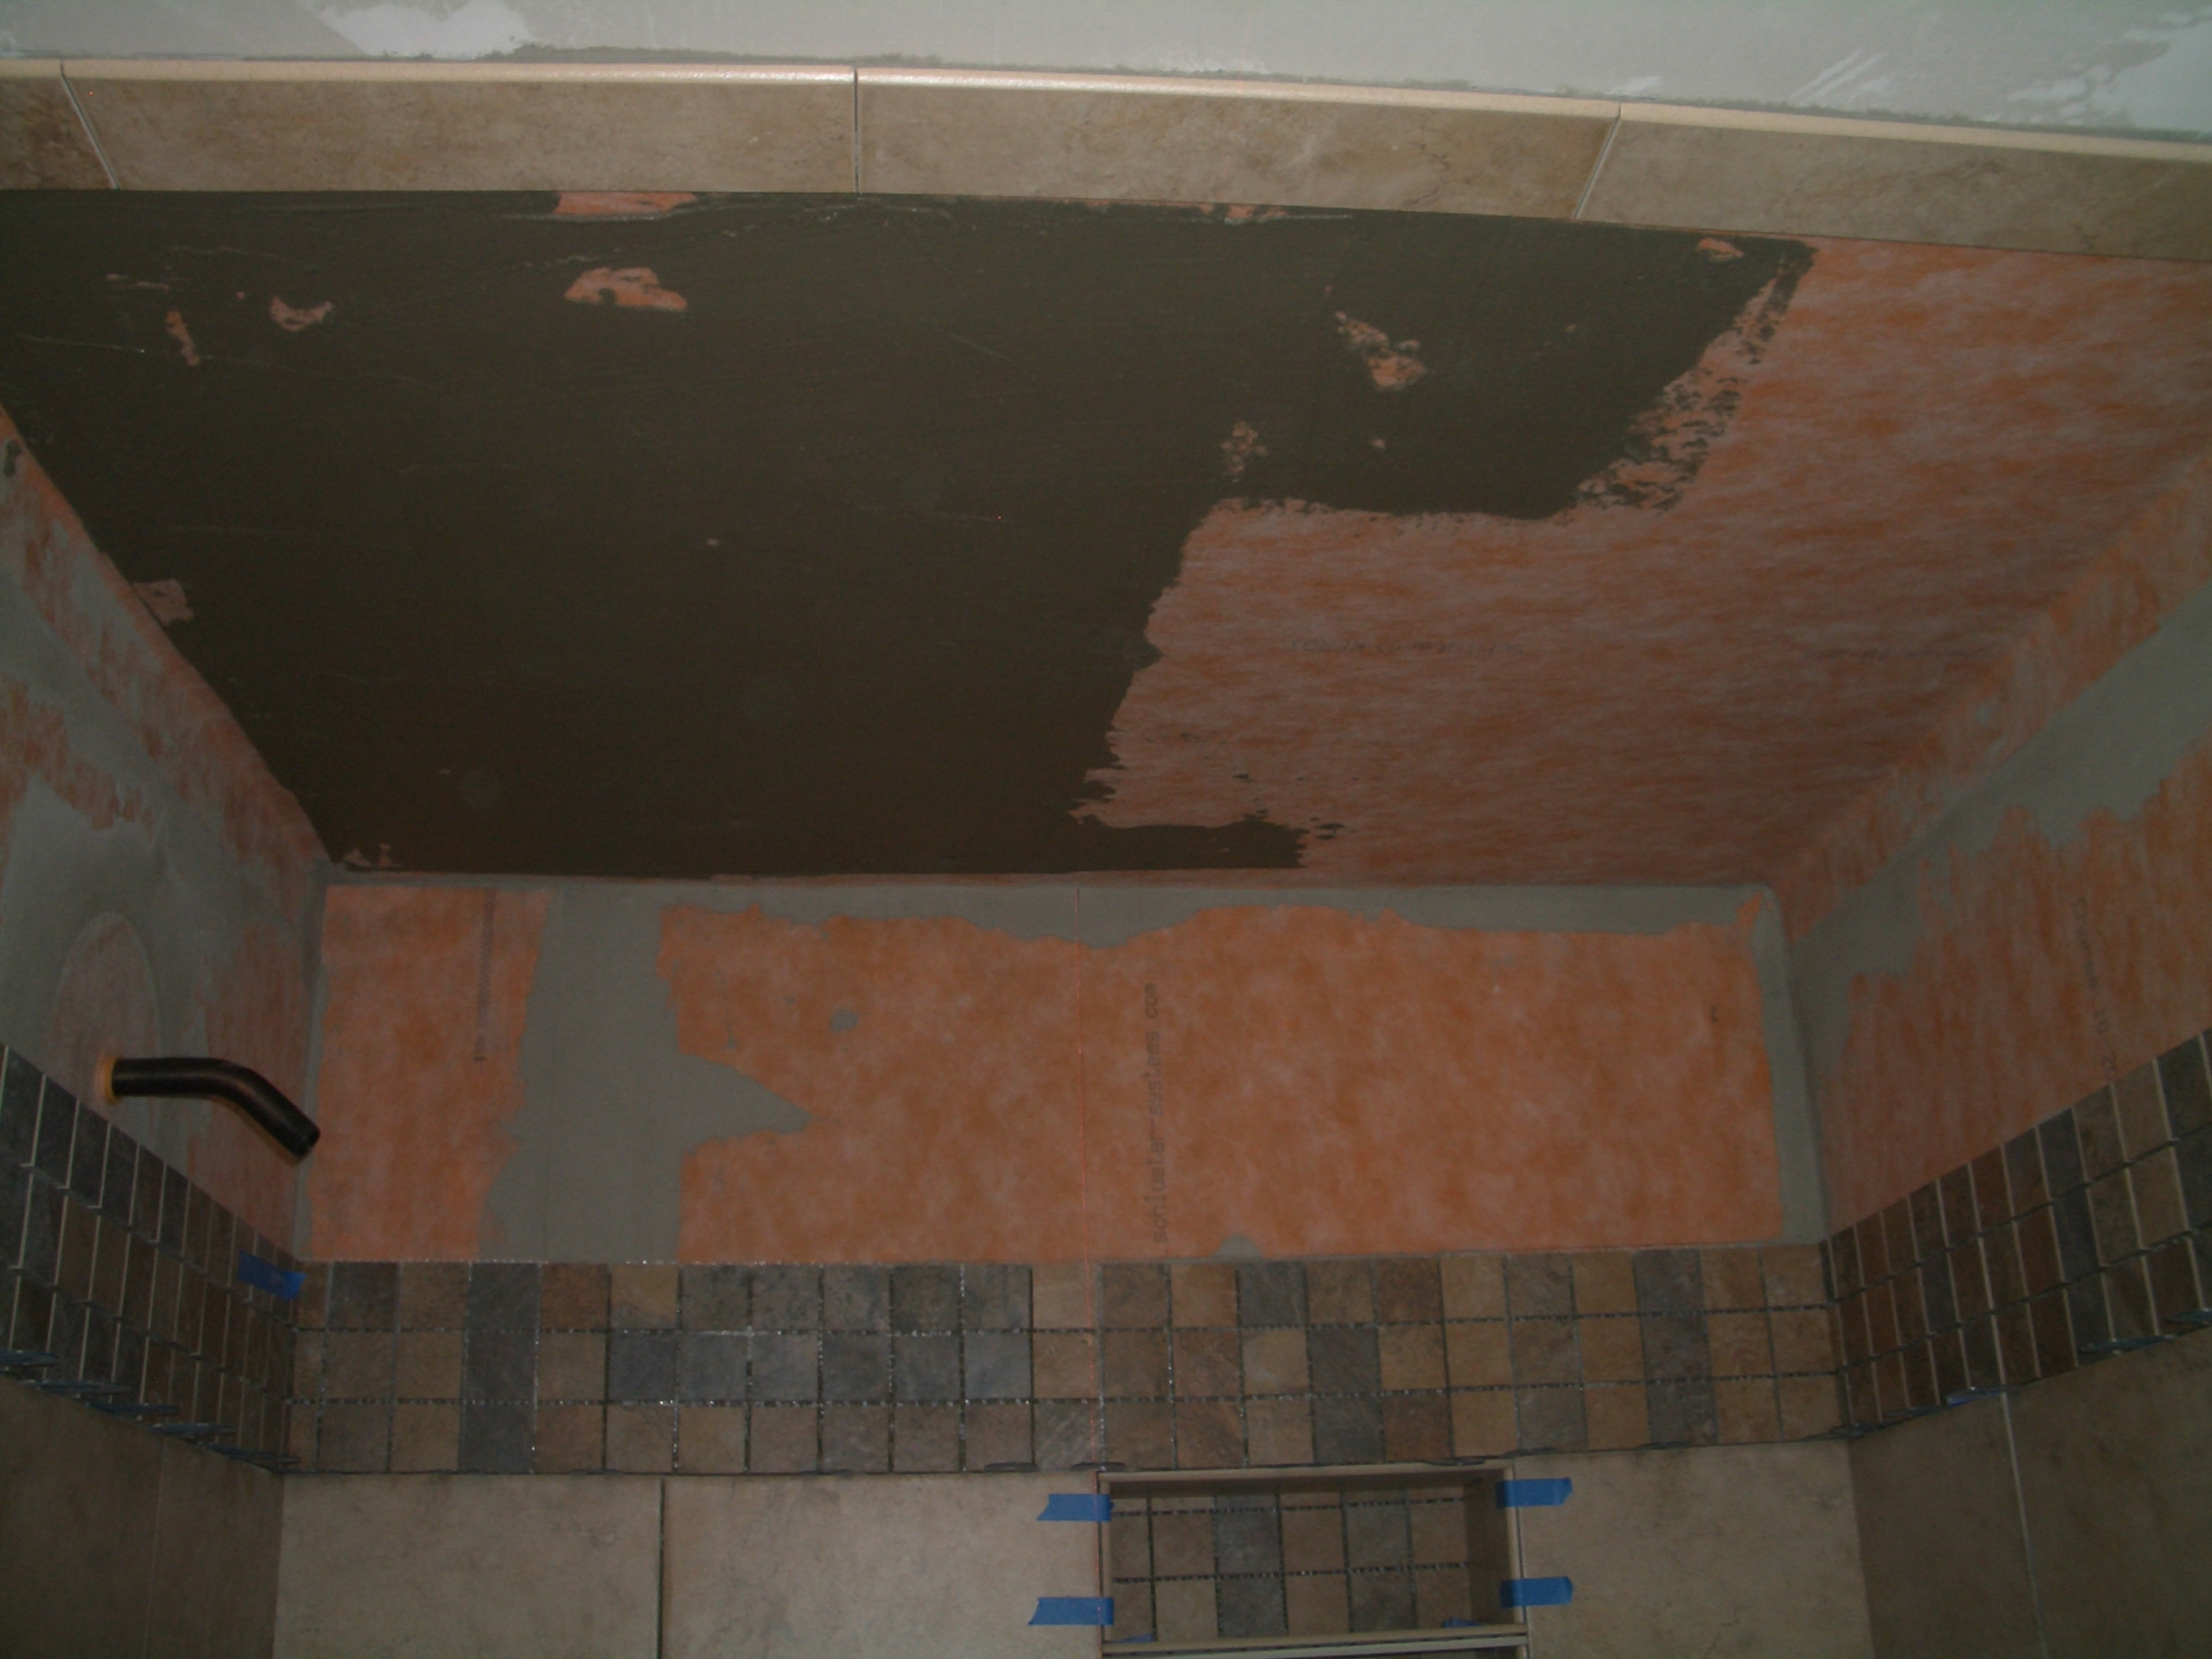 bathroom floor tile installation how to install tile on a shower ceiling 15910 | CIMG3736